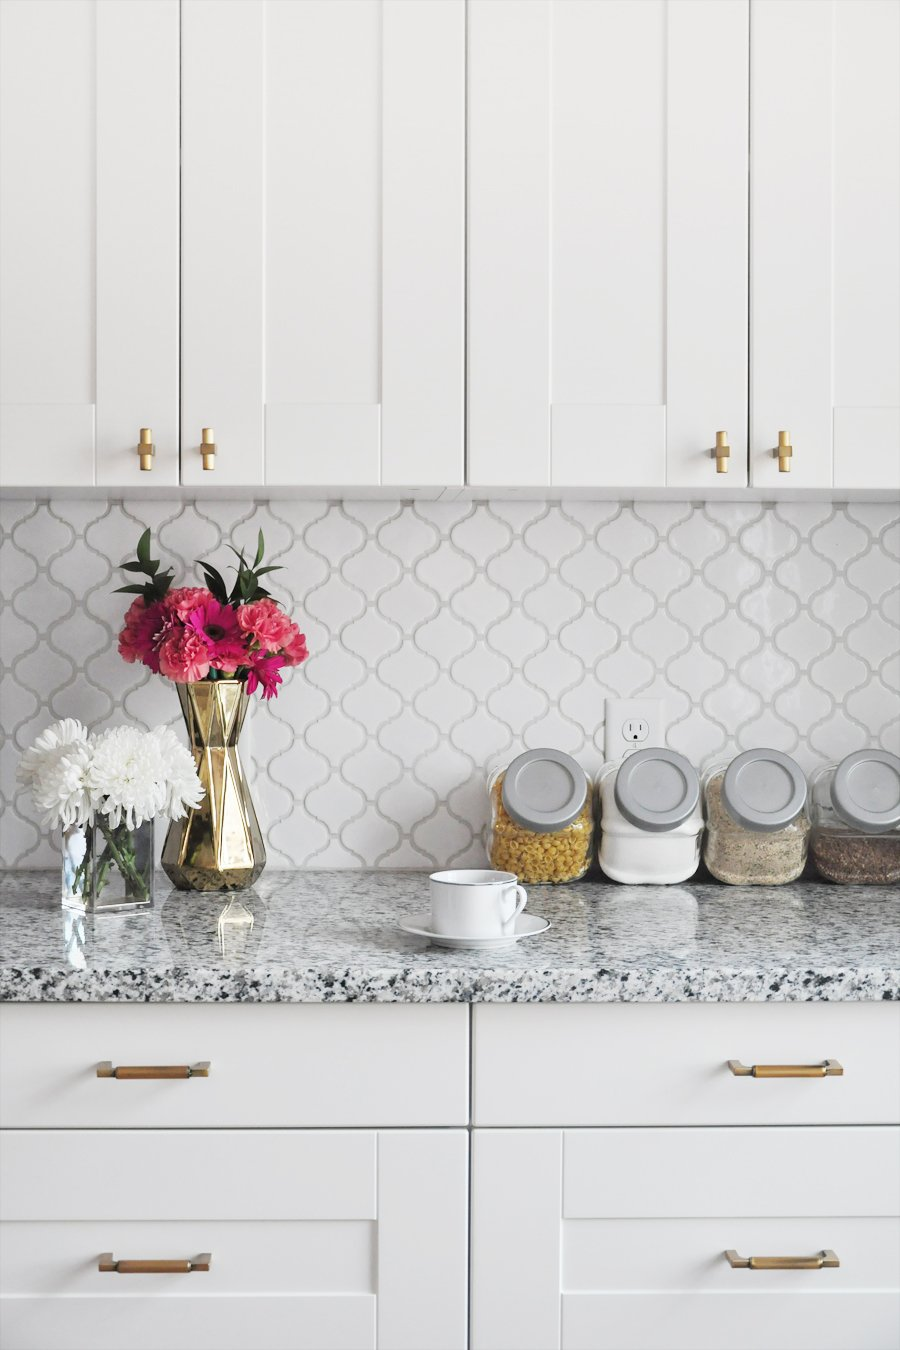 how to tile a kitchen backsplash diy tutorial sponsored diy tile kitchen backsplash for the home pinterest